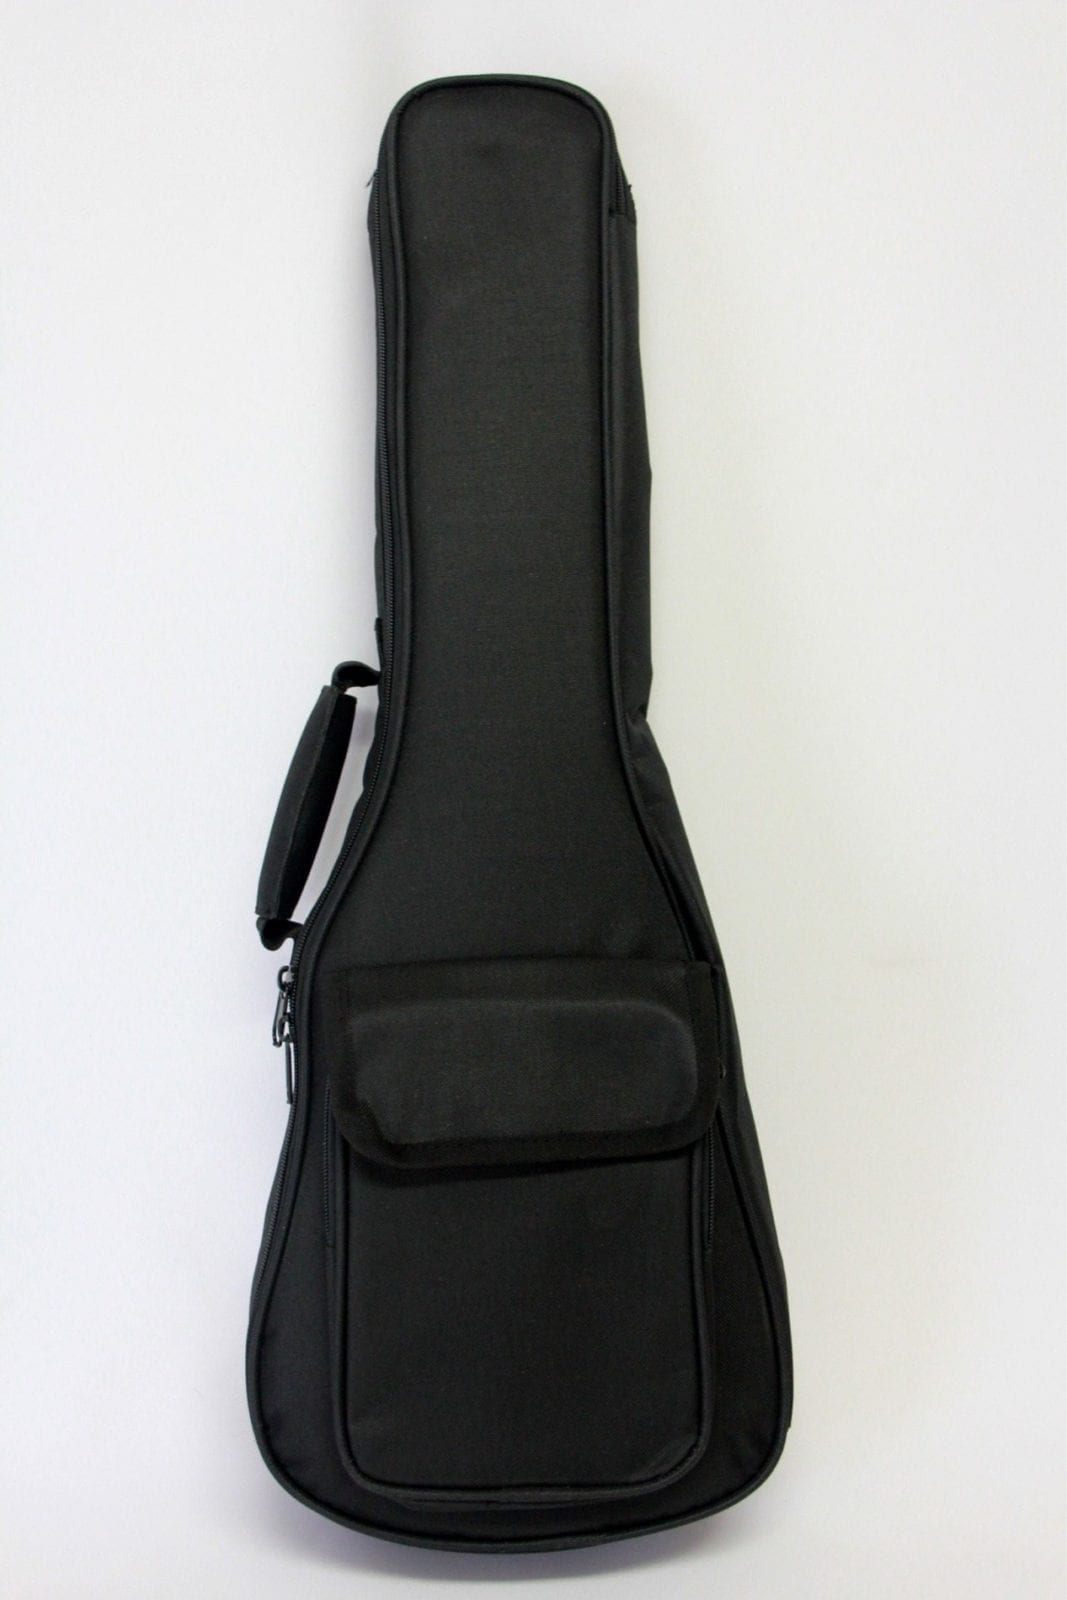 Sanlele Gig Bag for RP-302LP